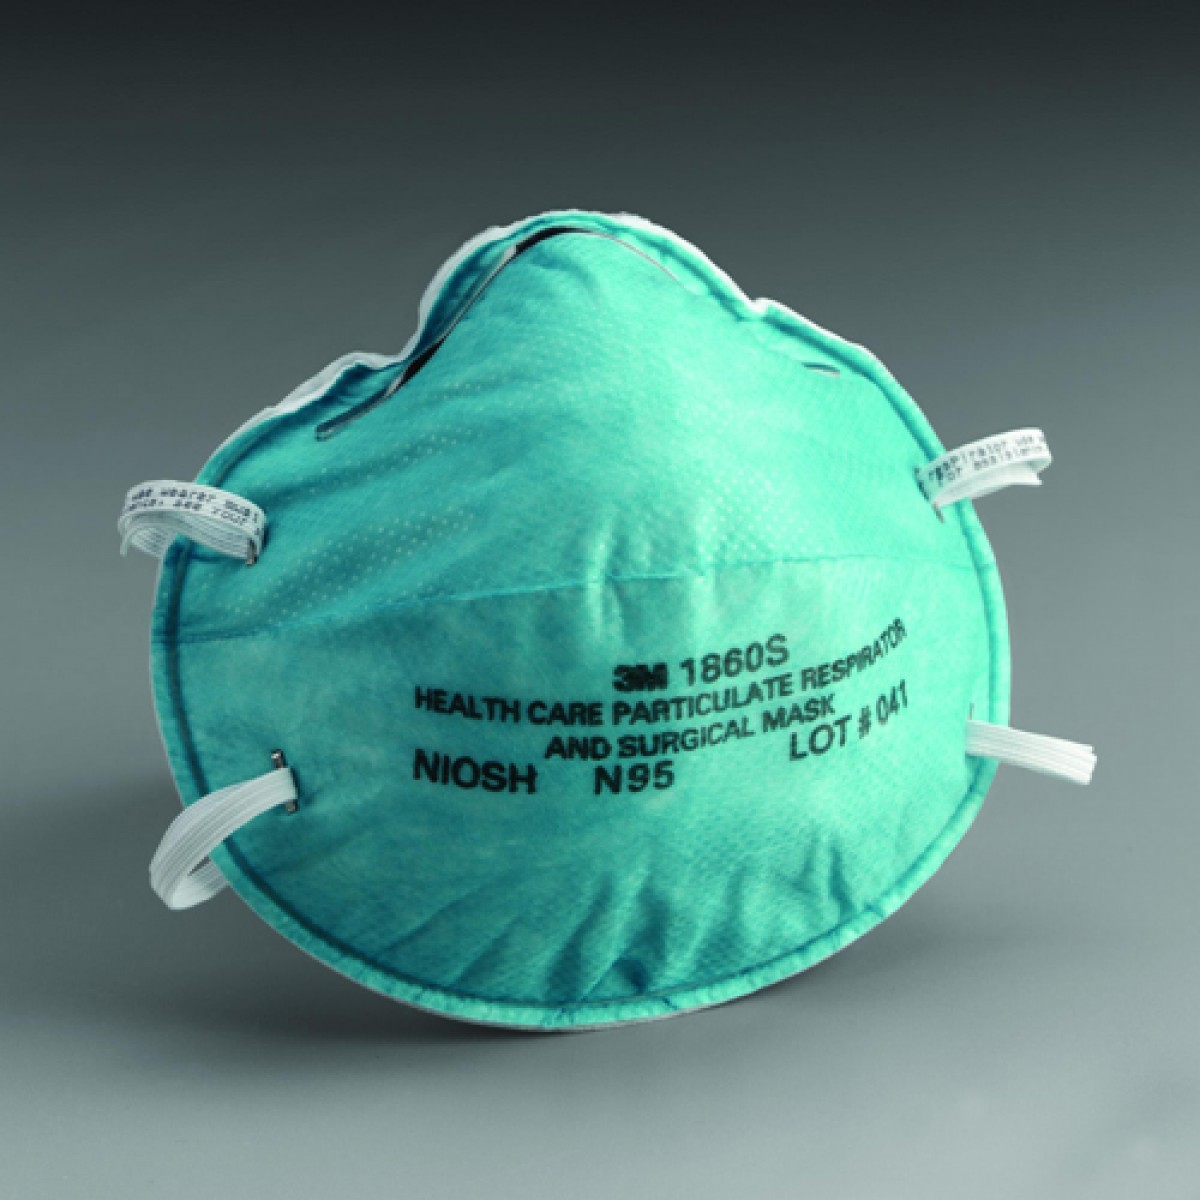 Health Care Particulate Respirator